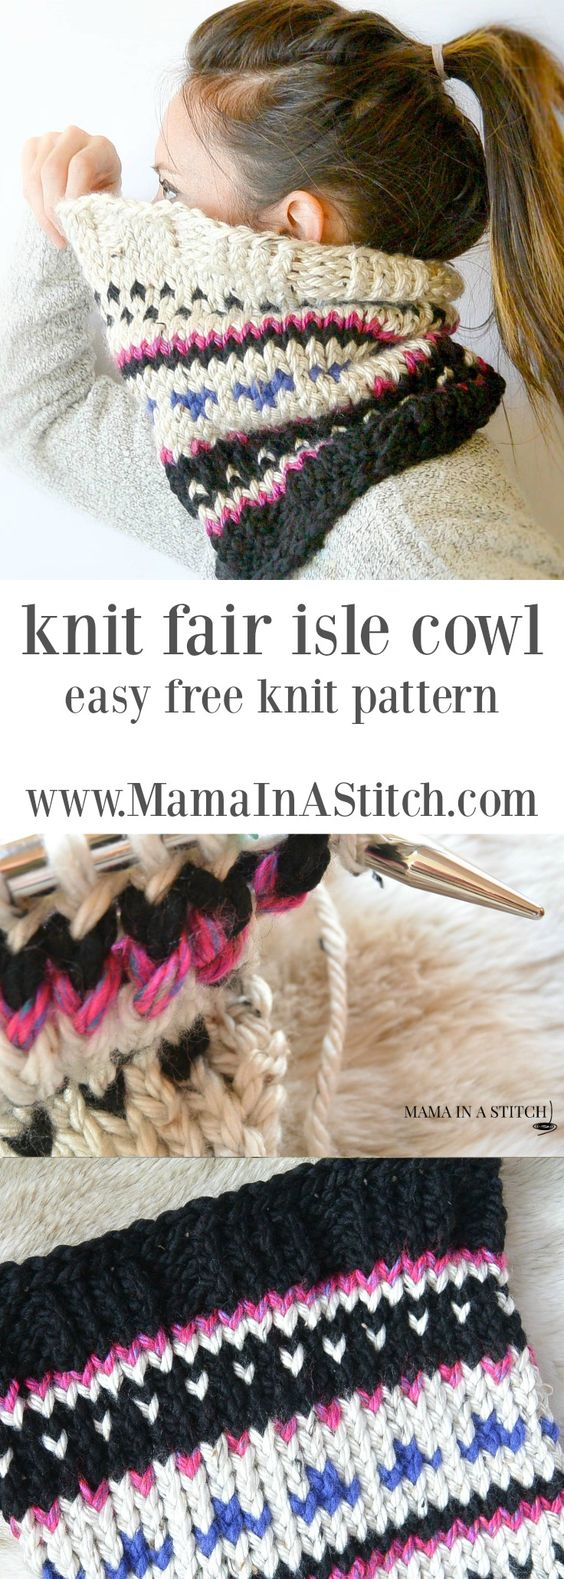 Alpine+Heights+Knit+Fair+Isle+Cowl+via+@MamaInAStitch